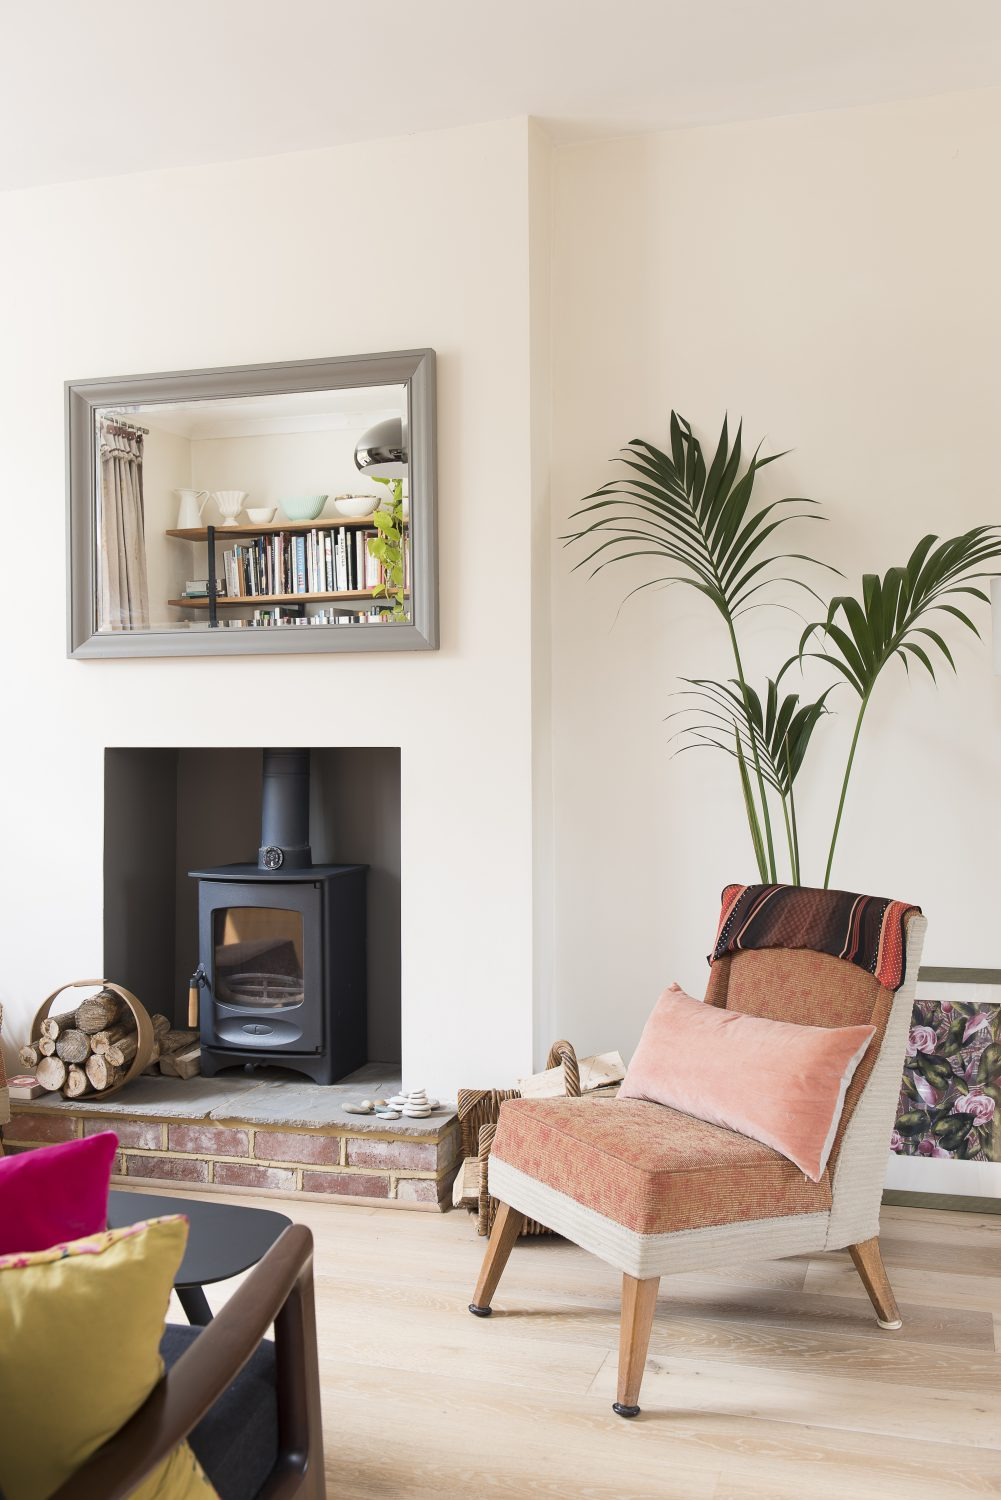 A woodburning stove keeps the sitting room cosy.